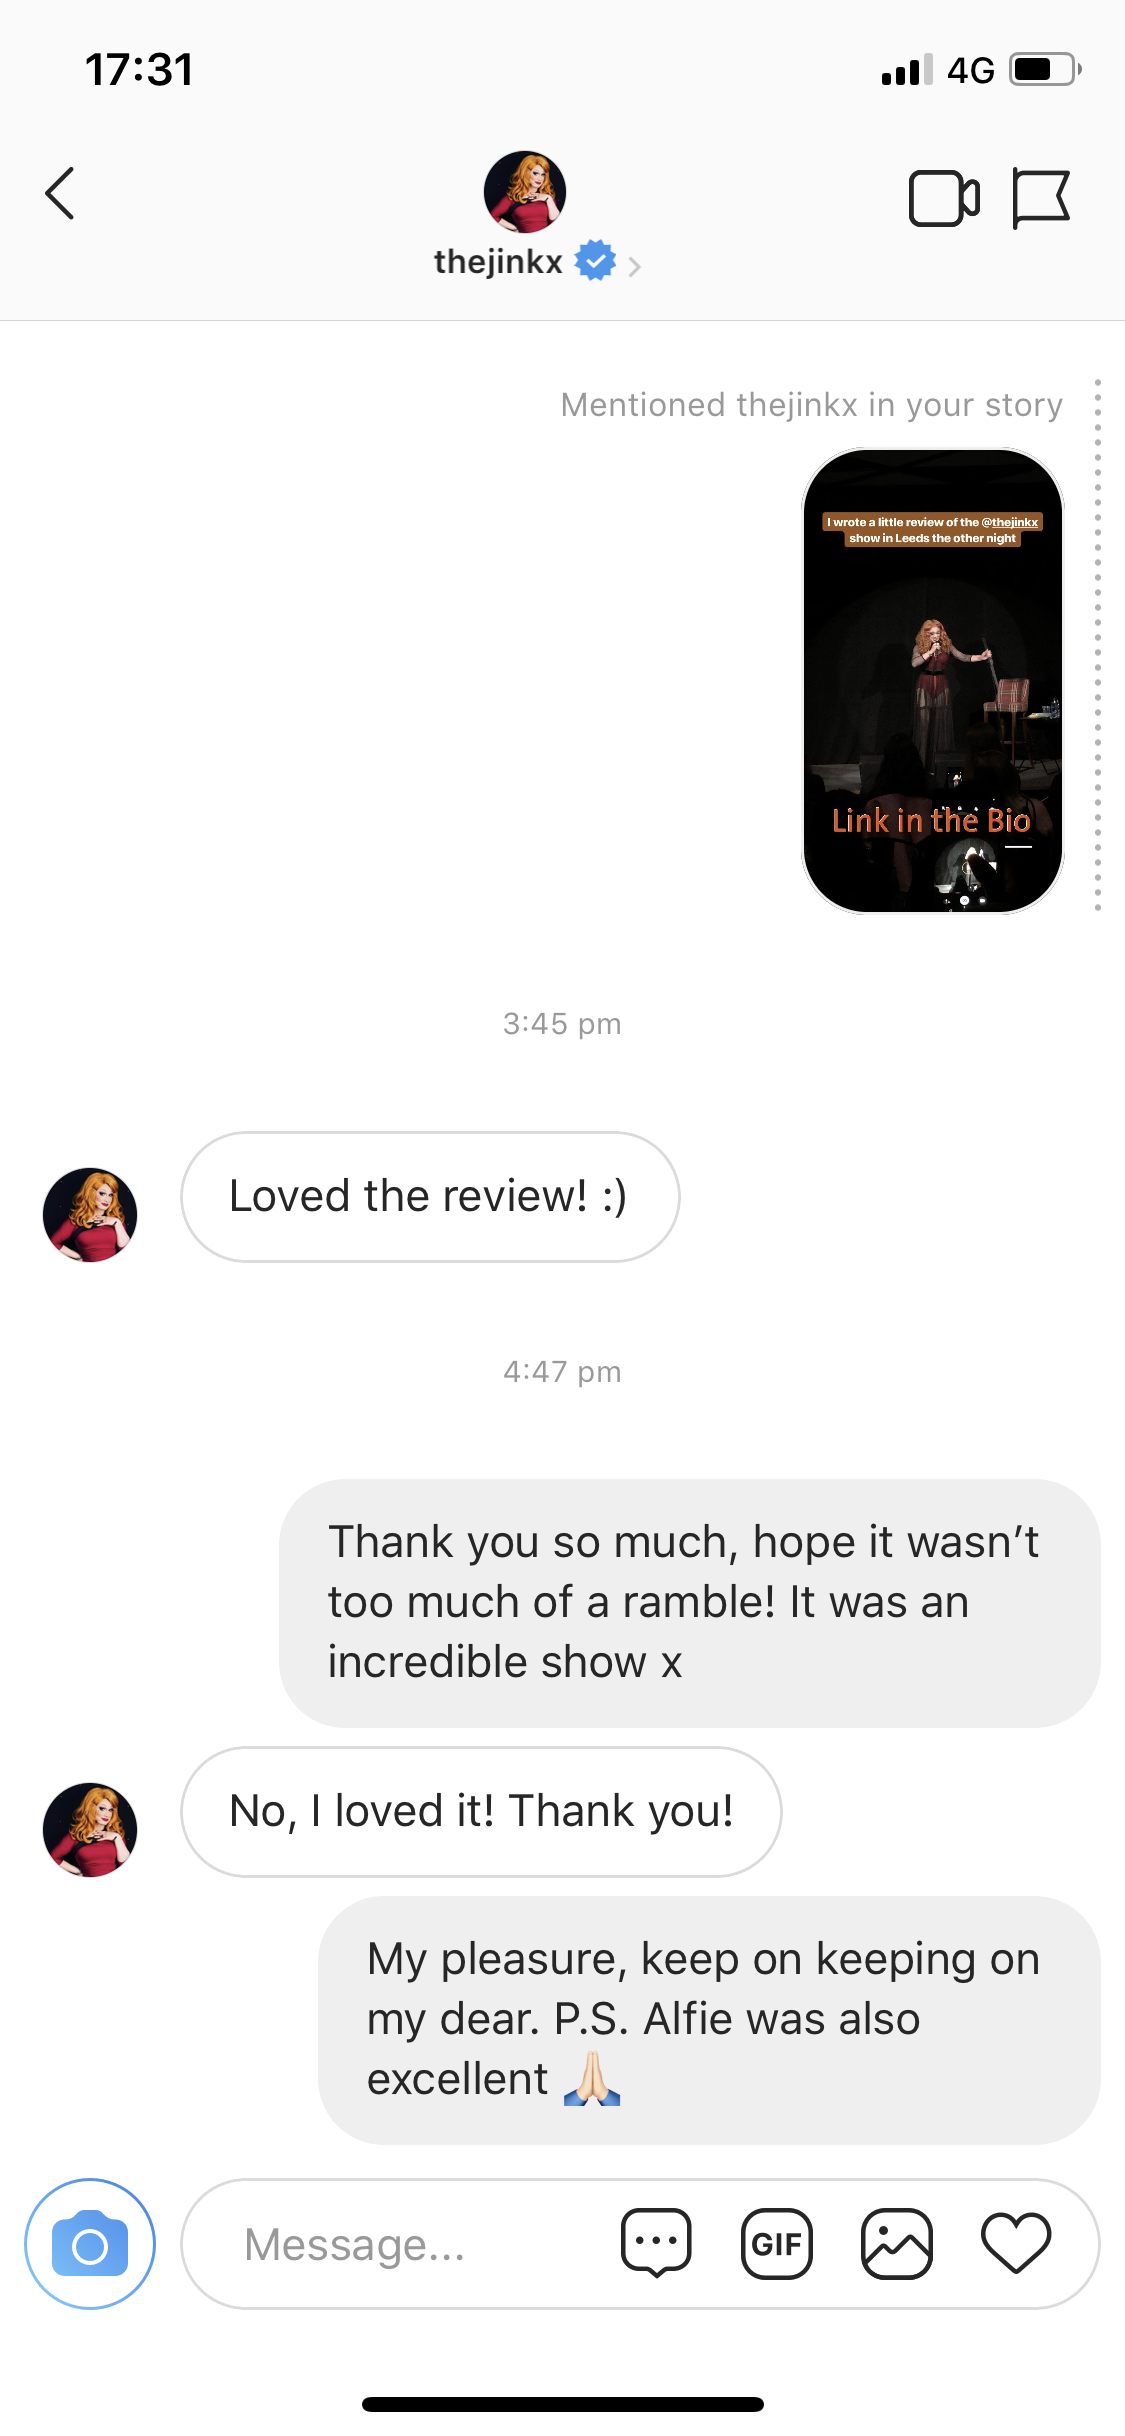 Jinkx Monsoon Instagram message